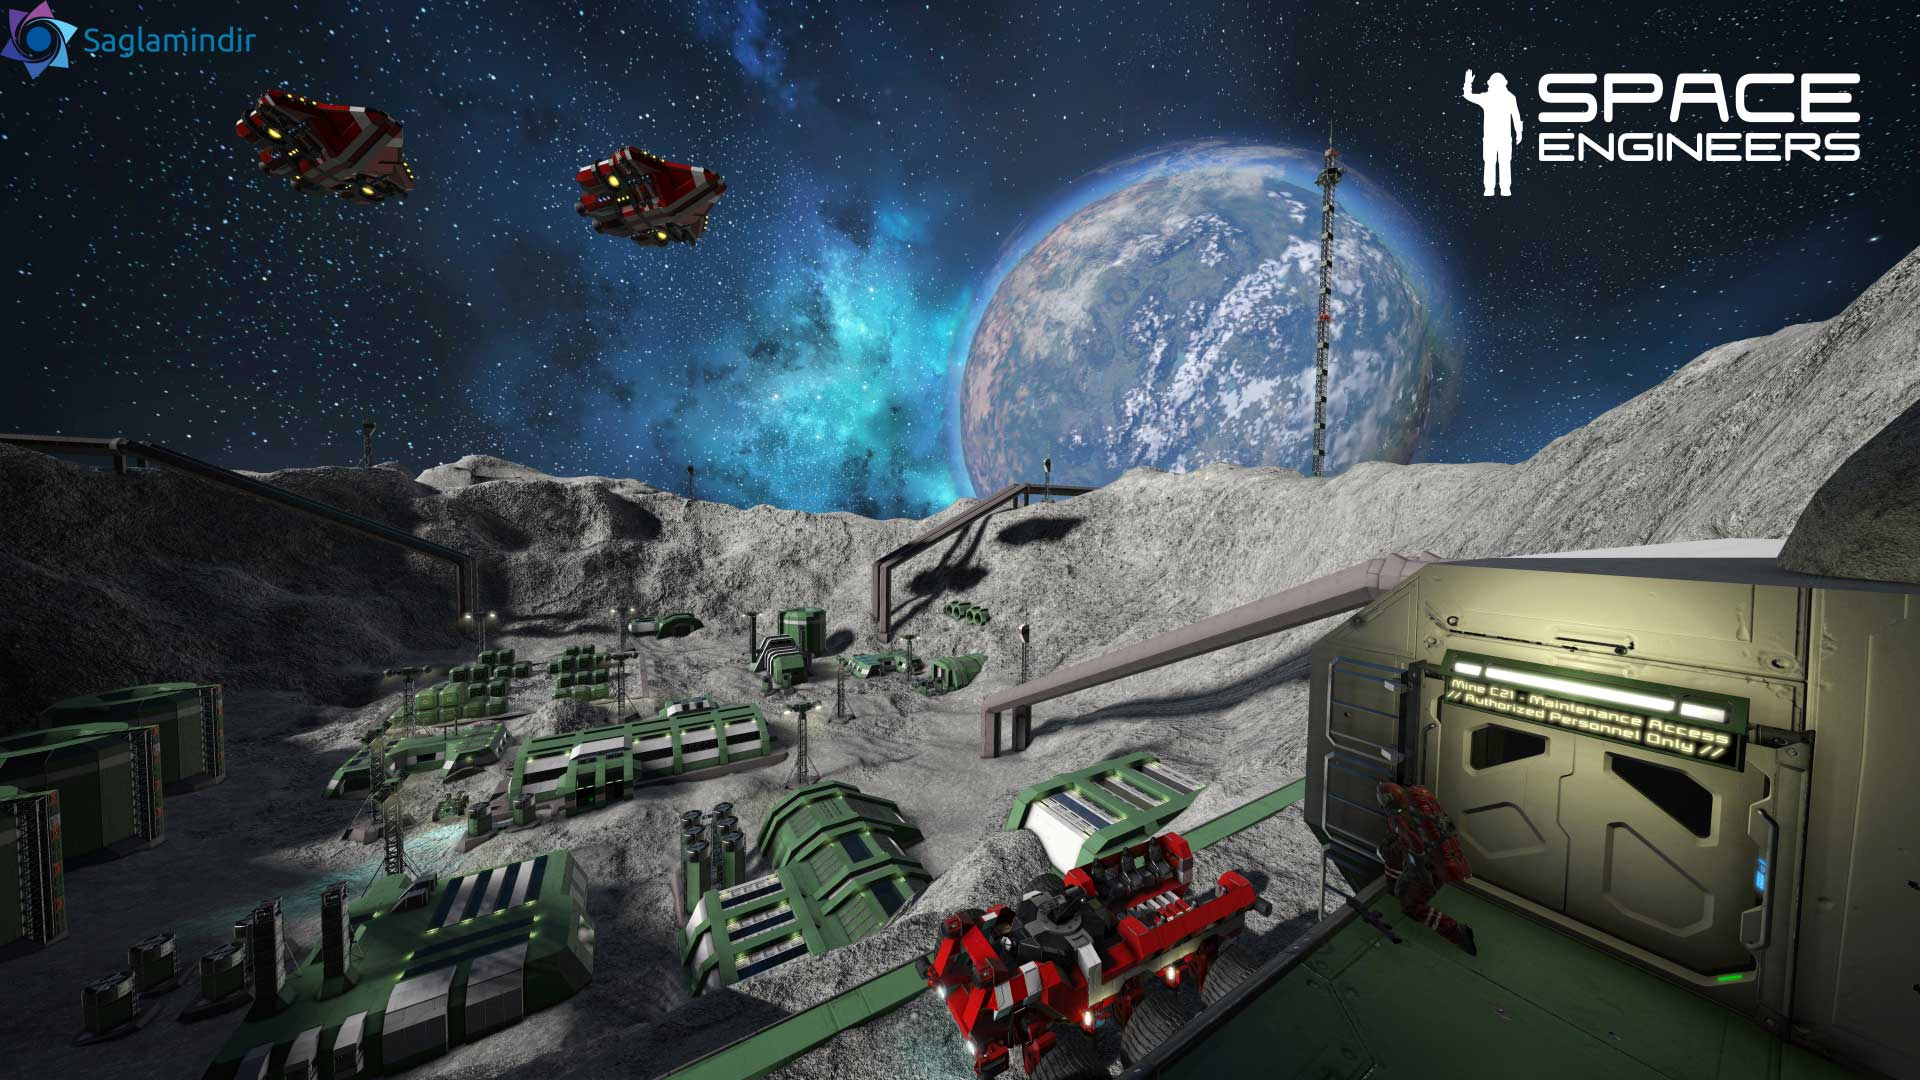 space engineers sağlamindir